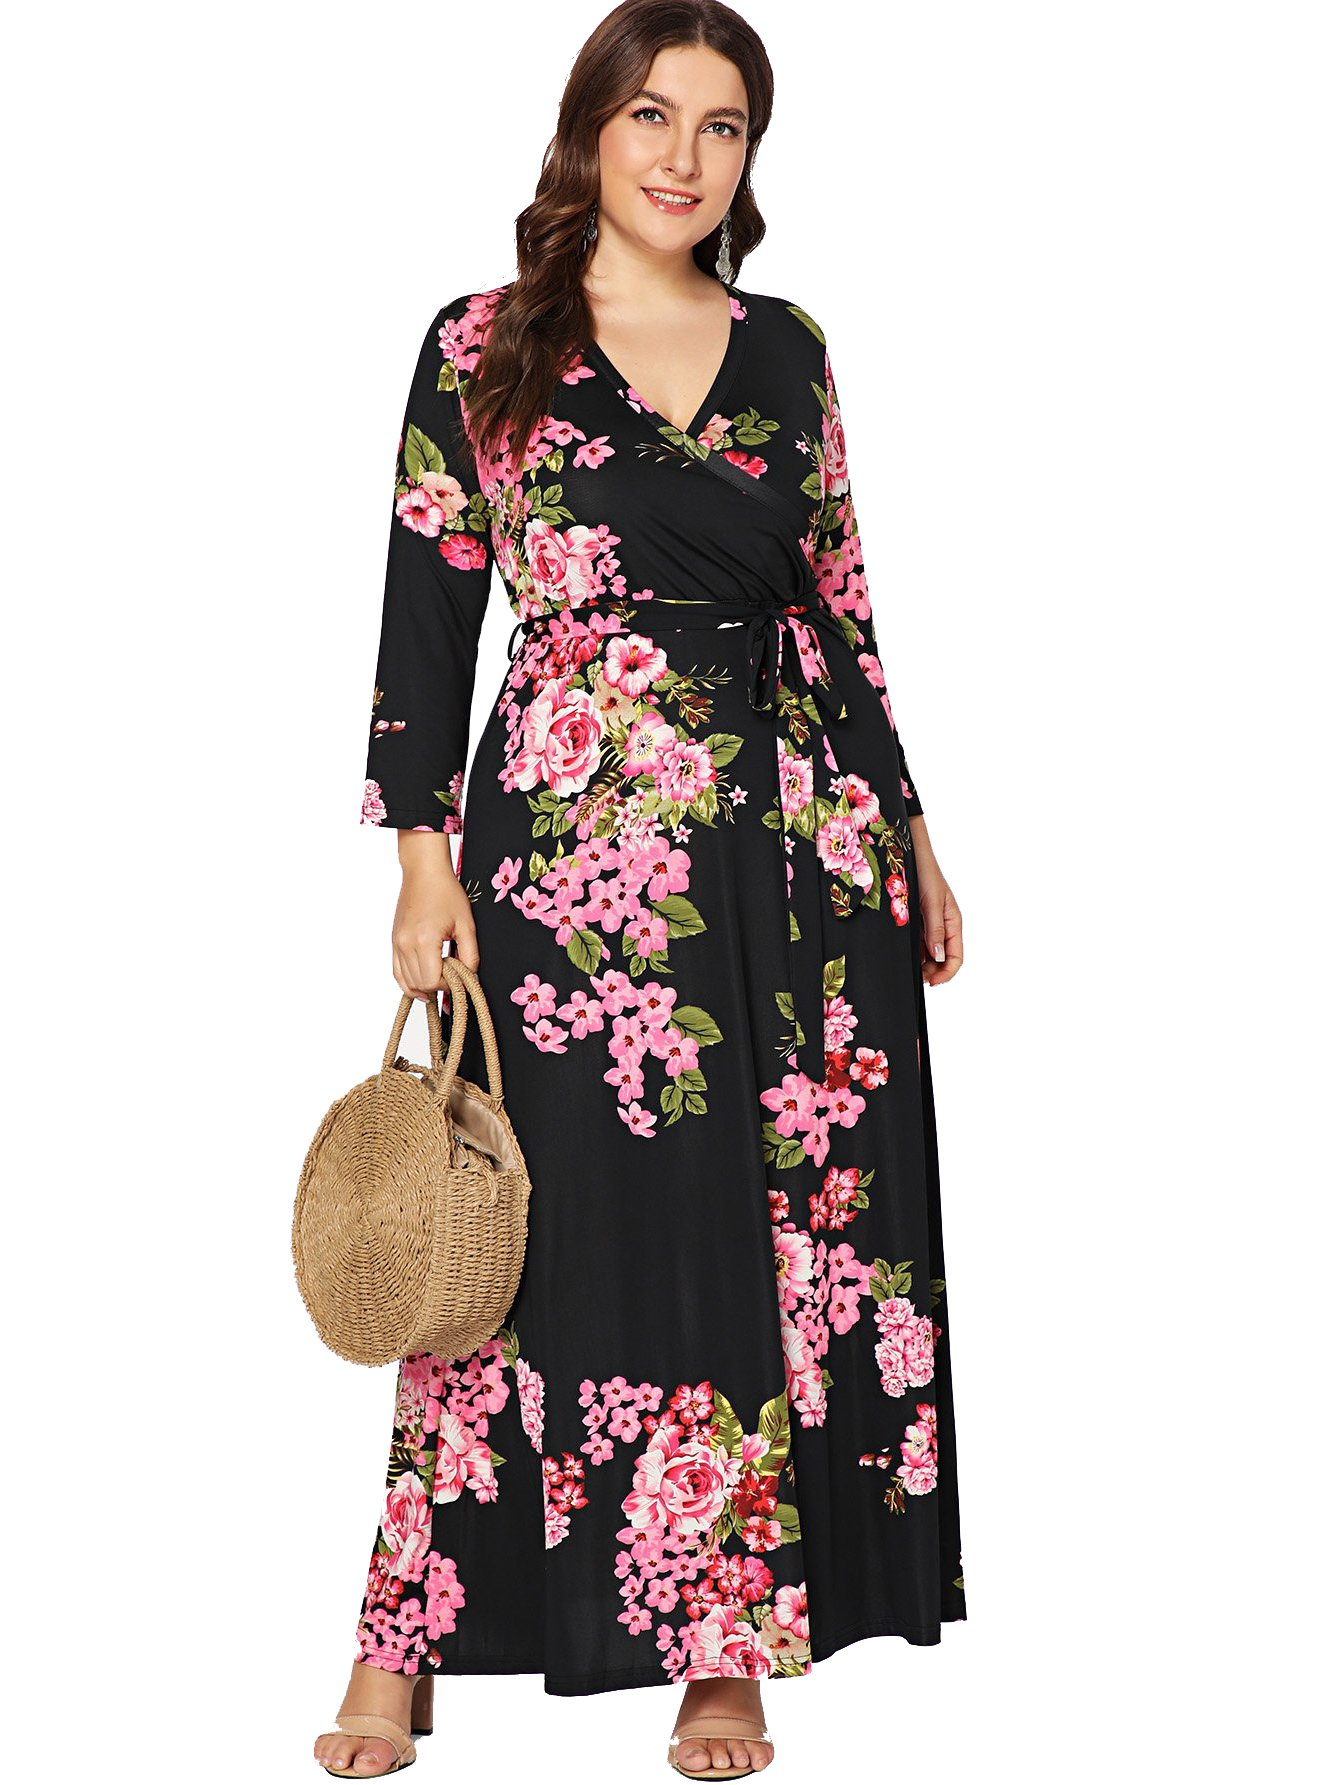 a17afc9039a Milumia Plus Size Summer Floral Printed Wrap V Neck Maxi Dress Party Black  Empire Waisted Dress